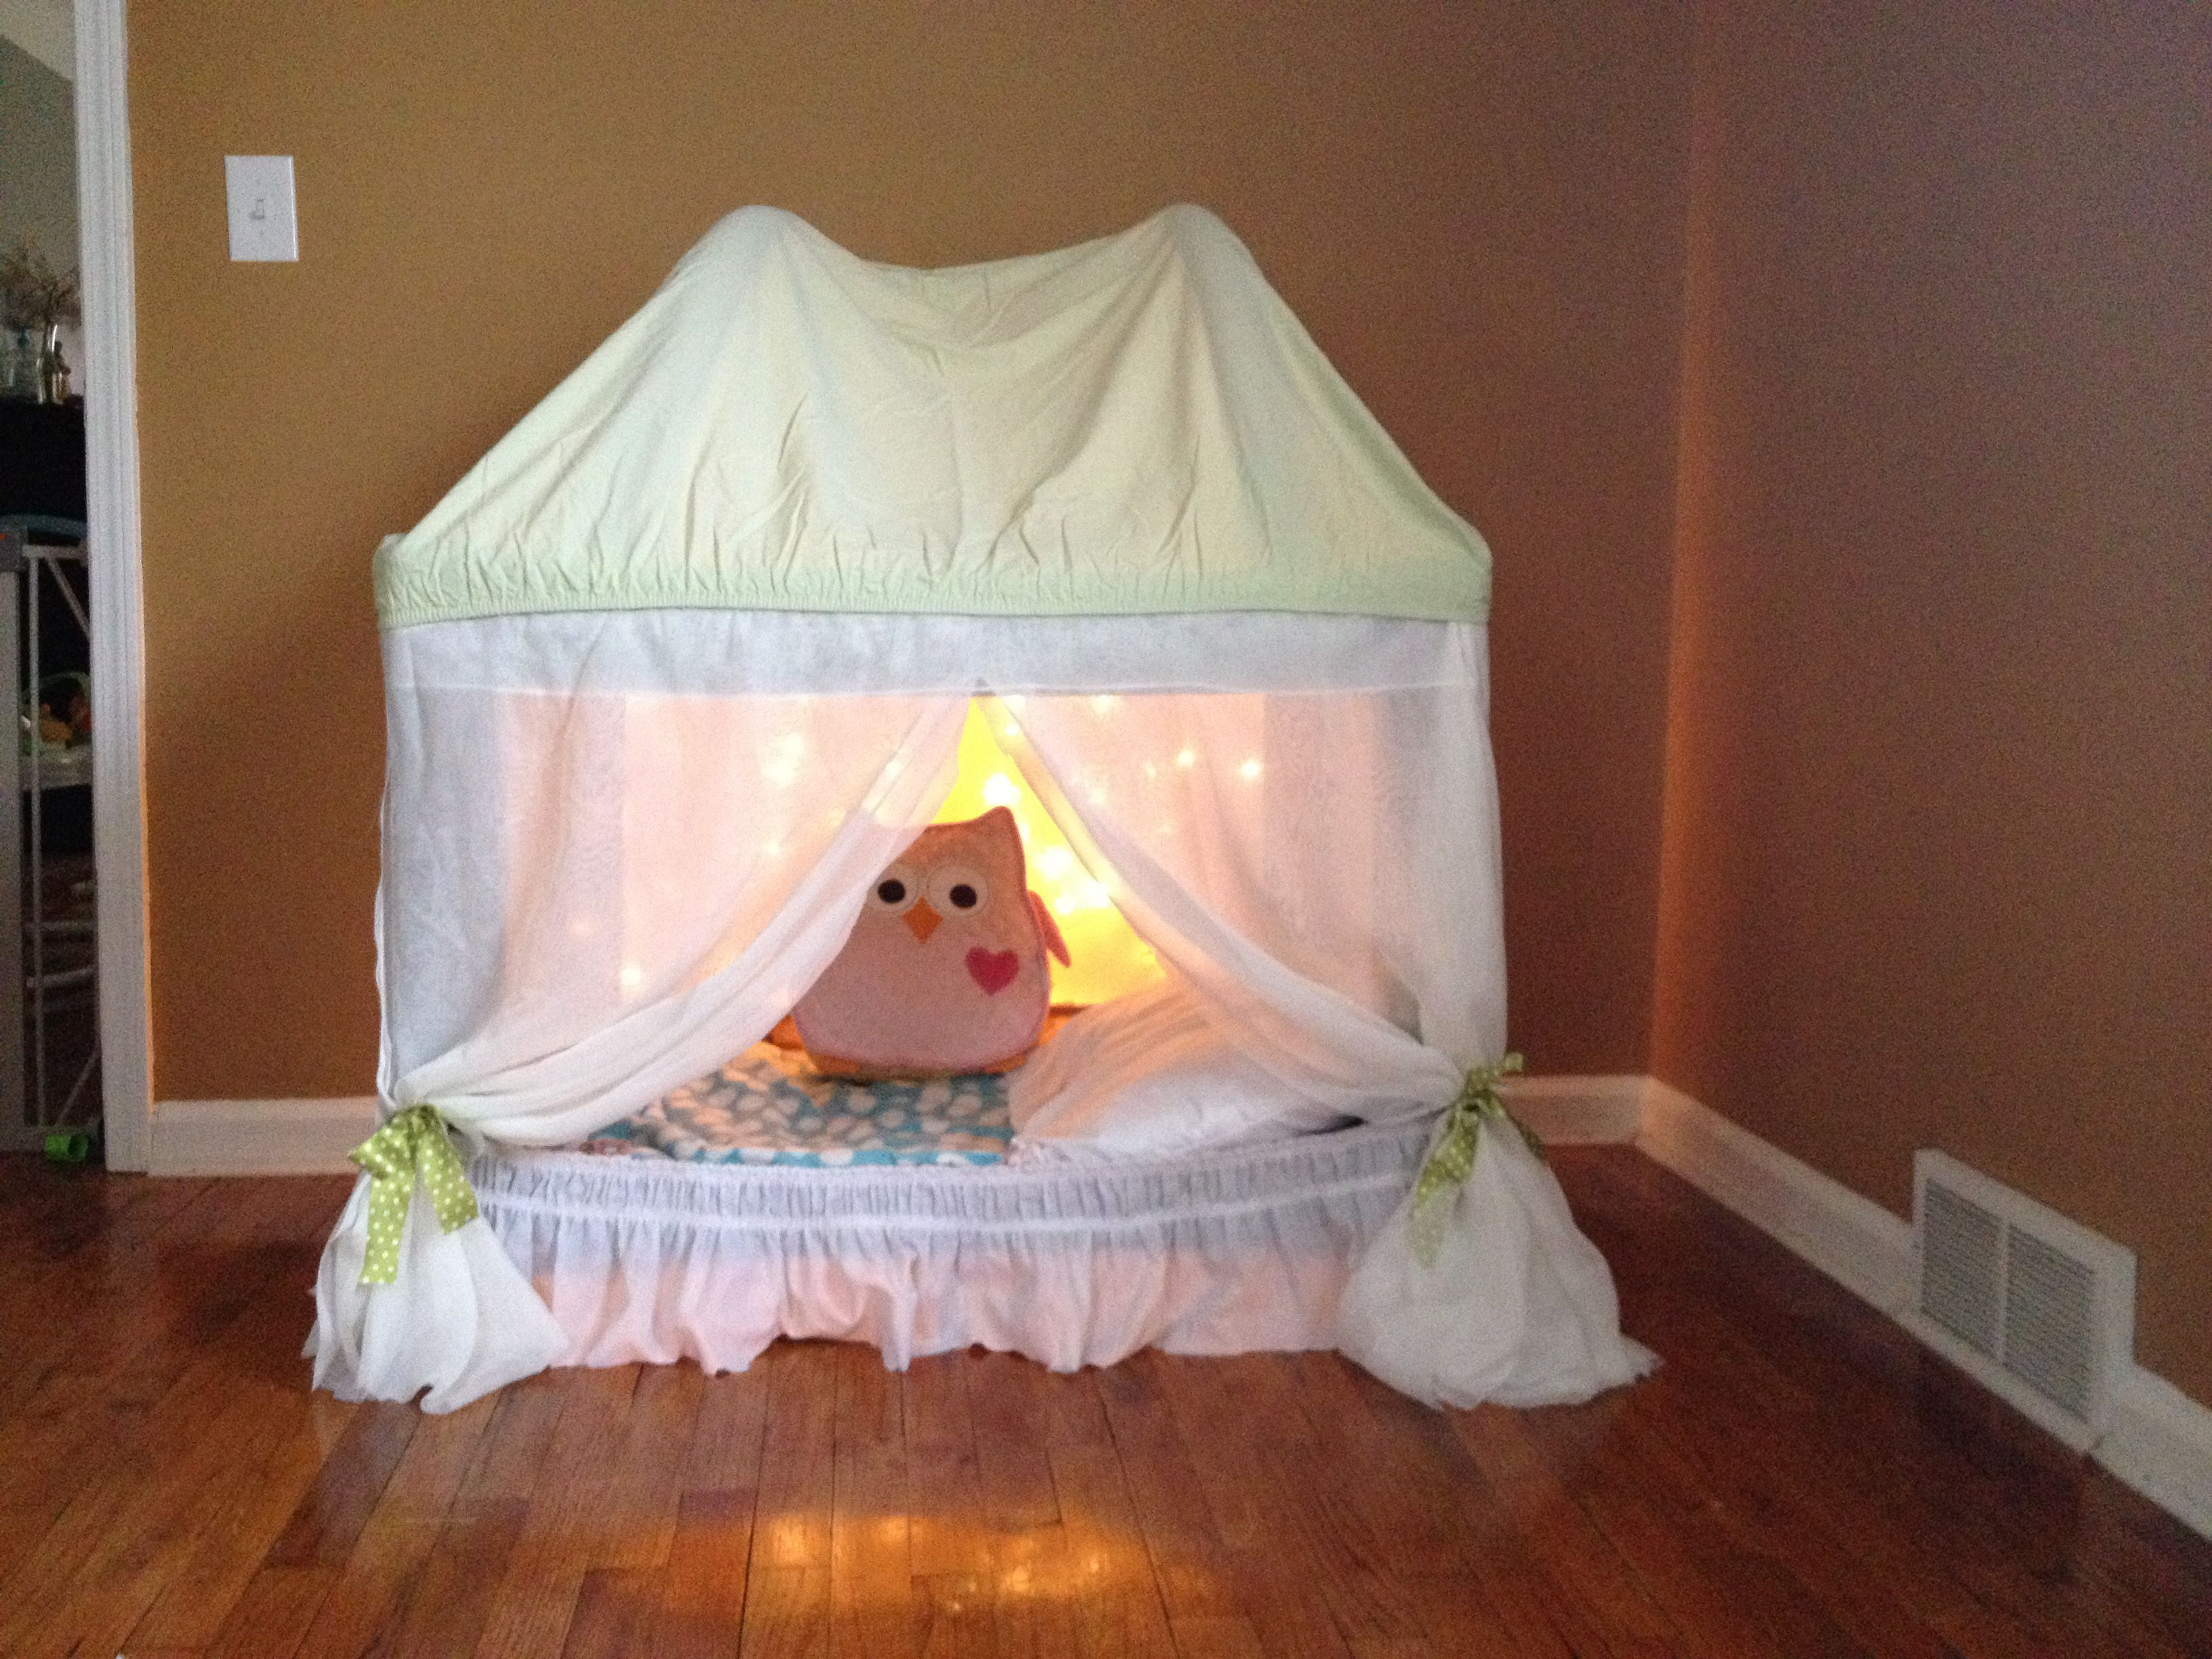 Our Old Pack N Play Repurposed Into A Relaxing Sensory